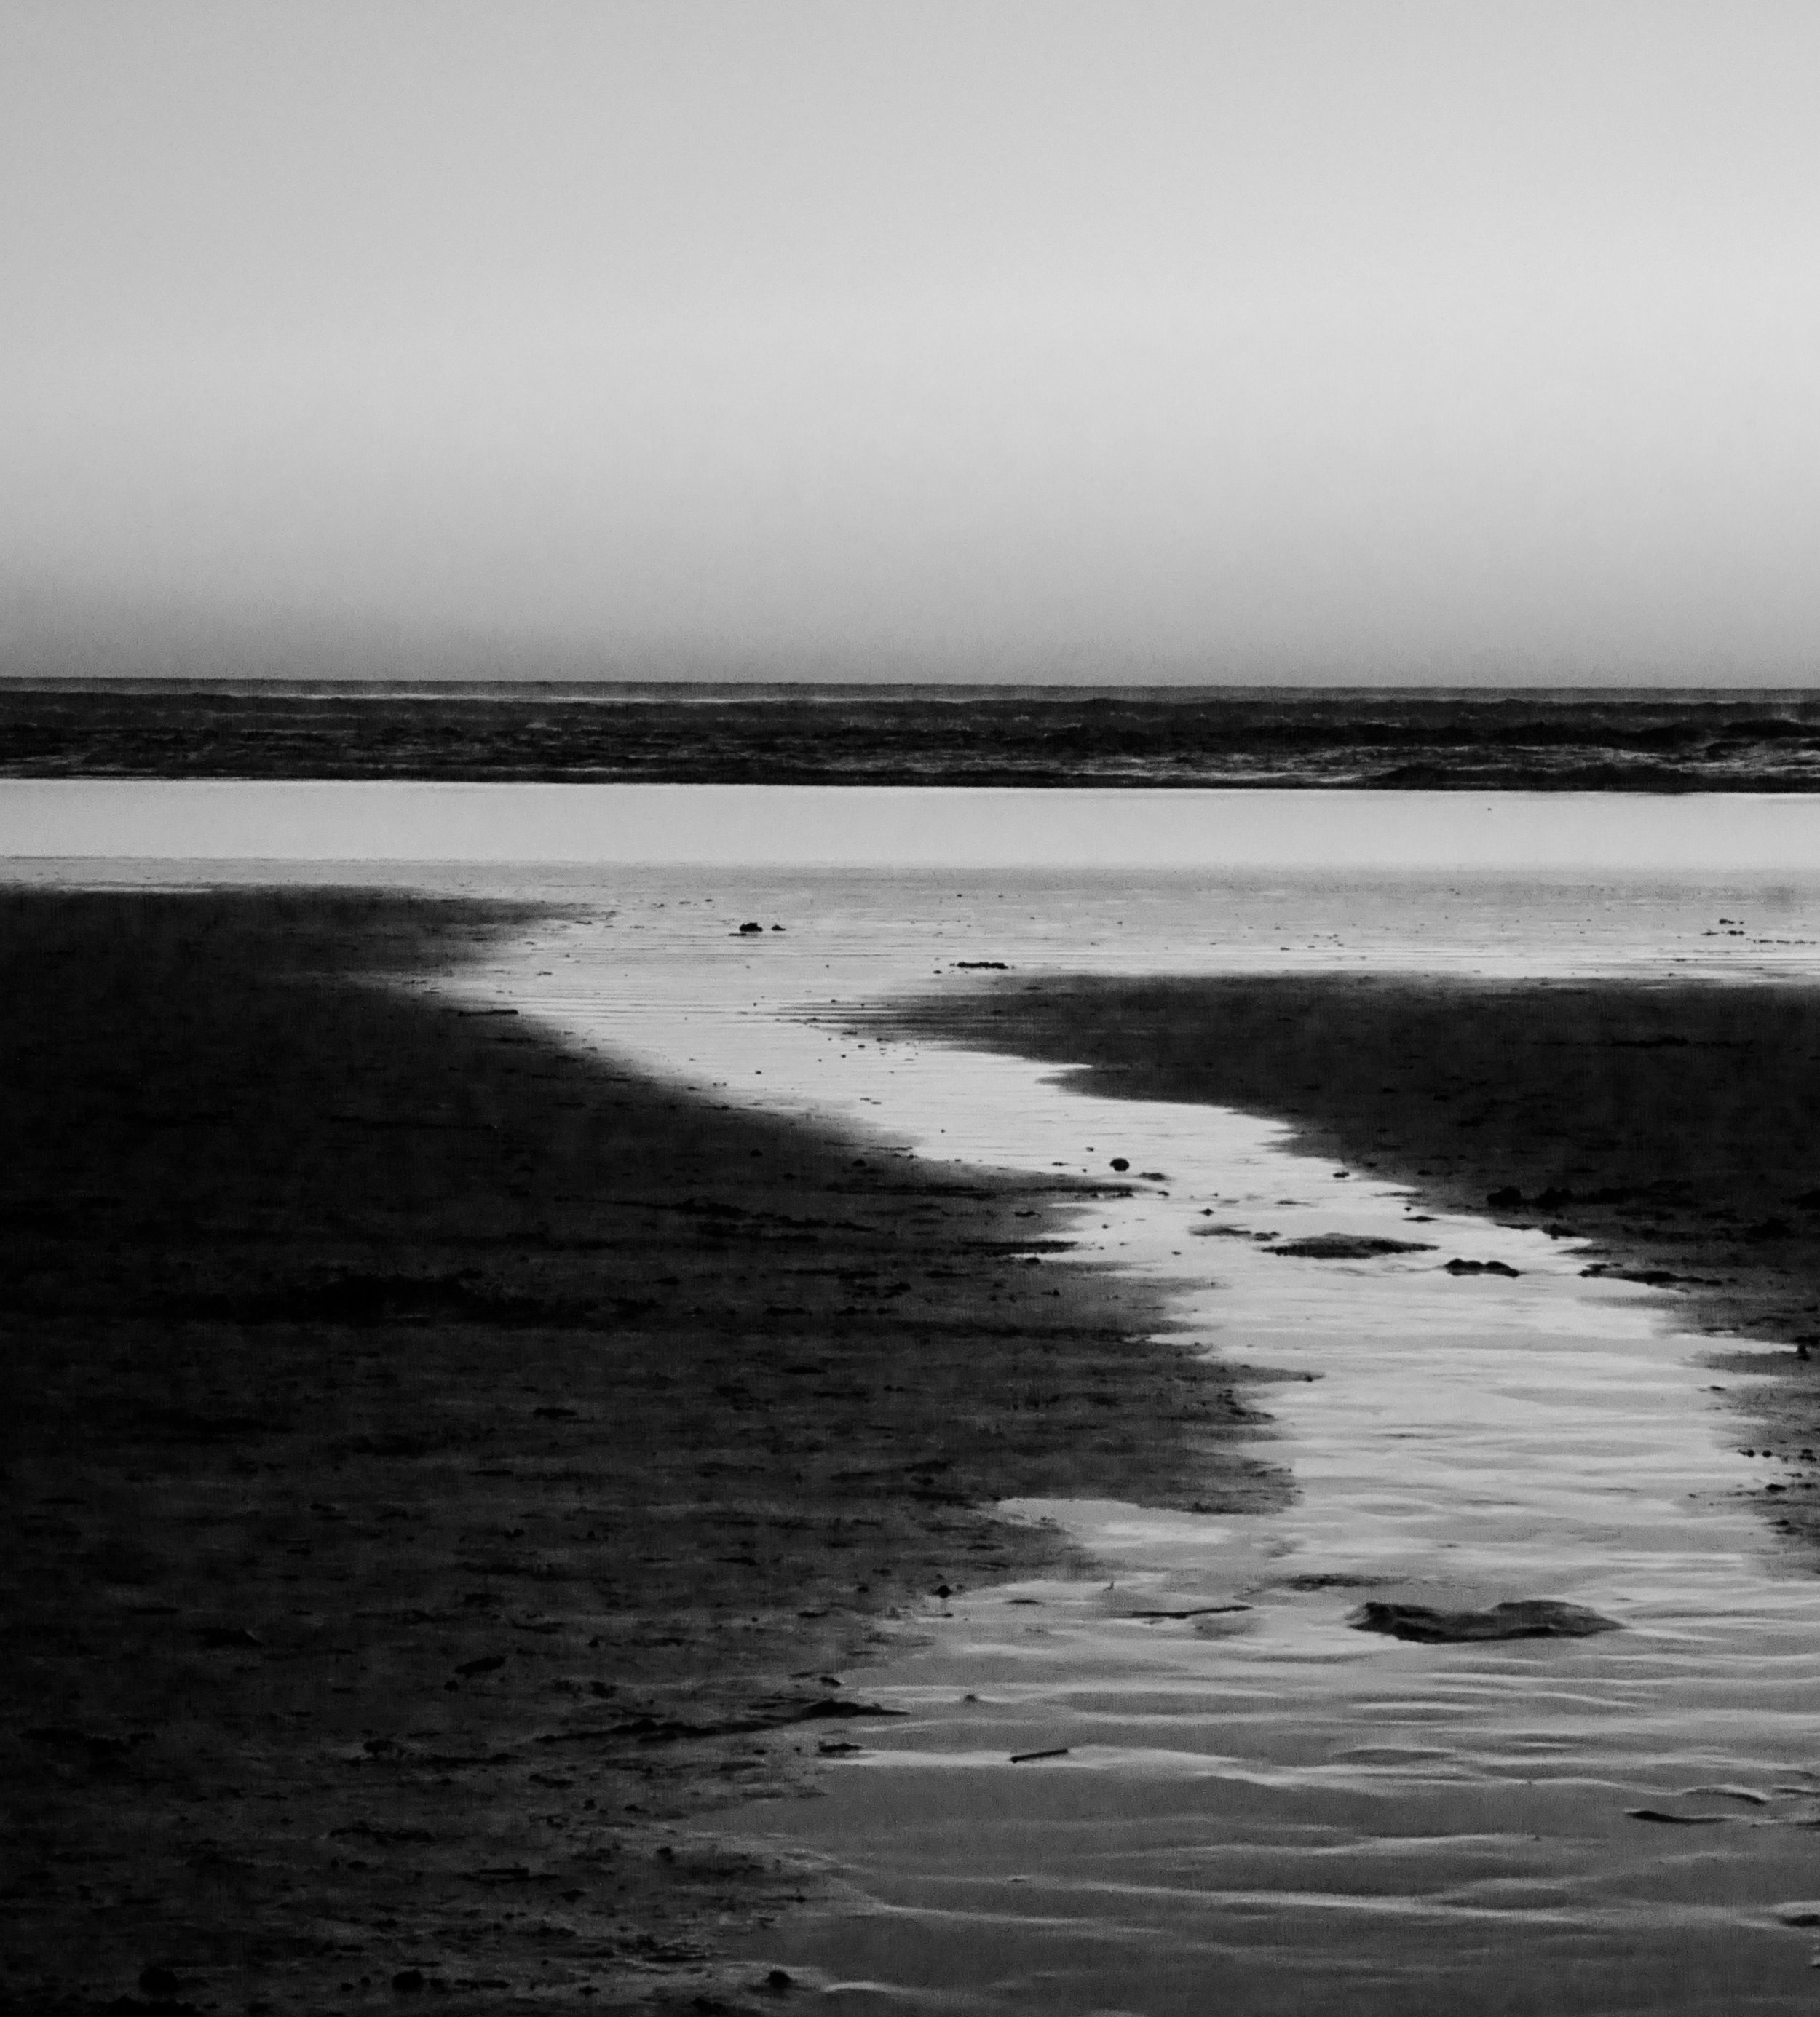 Grief draws me to the ocean, leading me home. North Oregon Coast. Photo by anne richardson